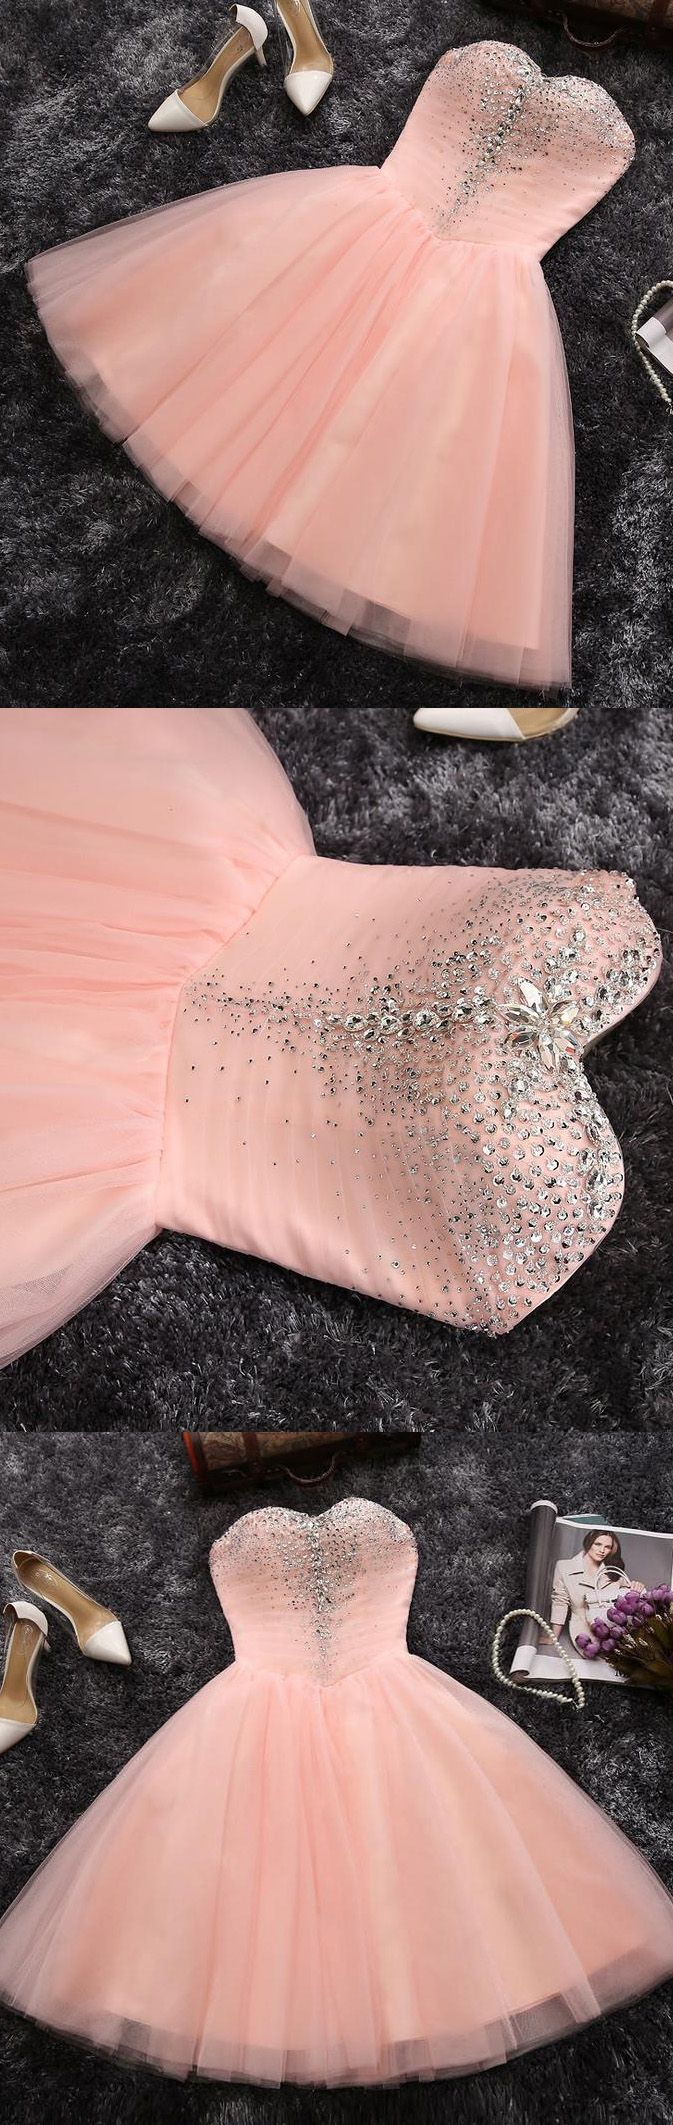 Sleeveless Homecoming Dresses, Pink Sleeveless Homecoming Dresses, Short Party Dresses, 2017 Homecoming Dress Cheap Tulle Sequins Short Prom Dress Party Dress WF02G42-163